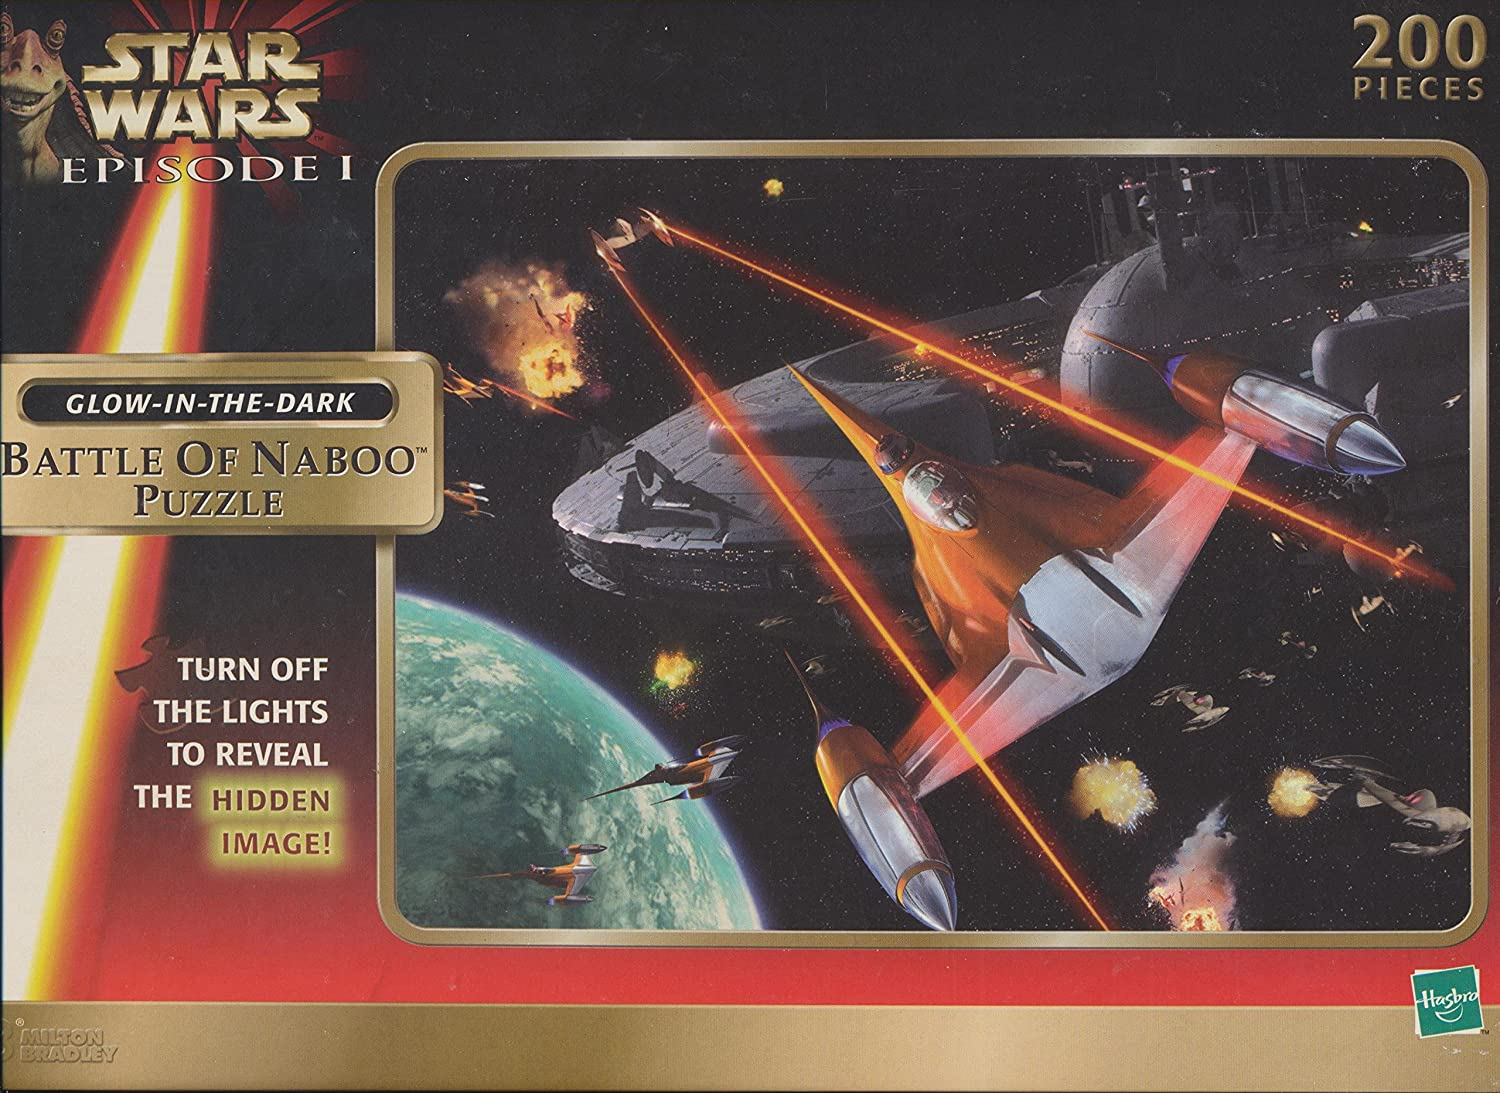 Star Star Star Wars Episode I Mos Espa Podrace Puzzle Glow in the Dark 200 Pieces by Hasbro 635676